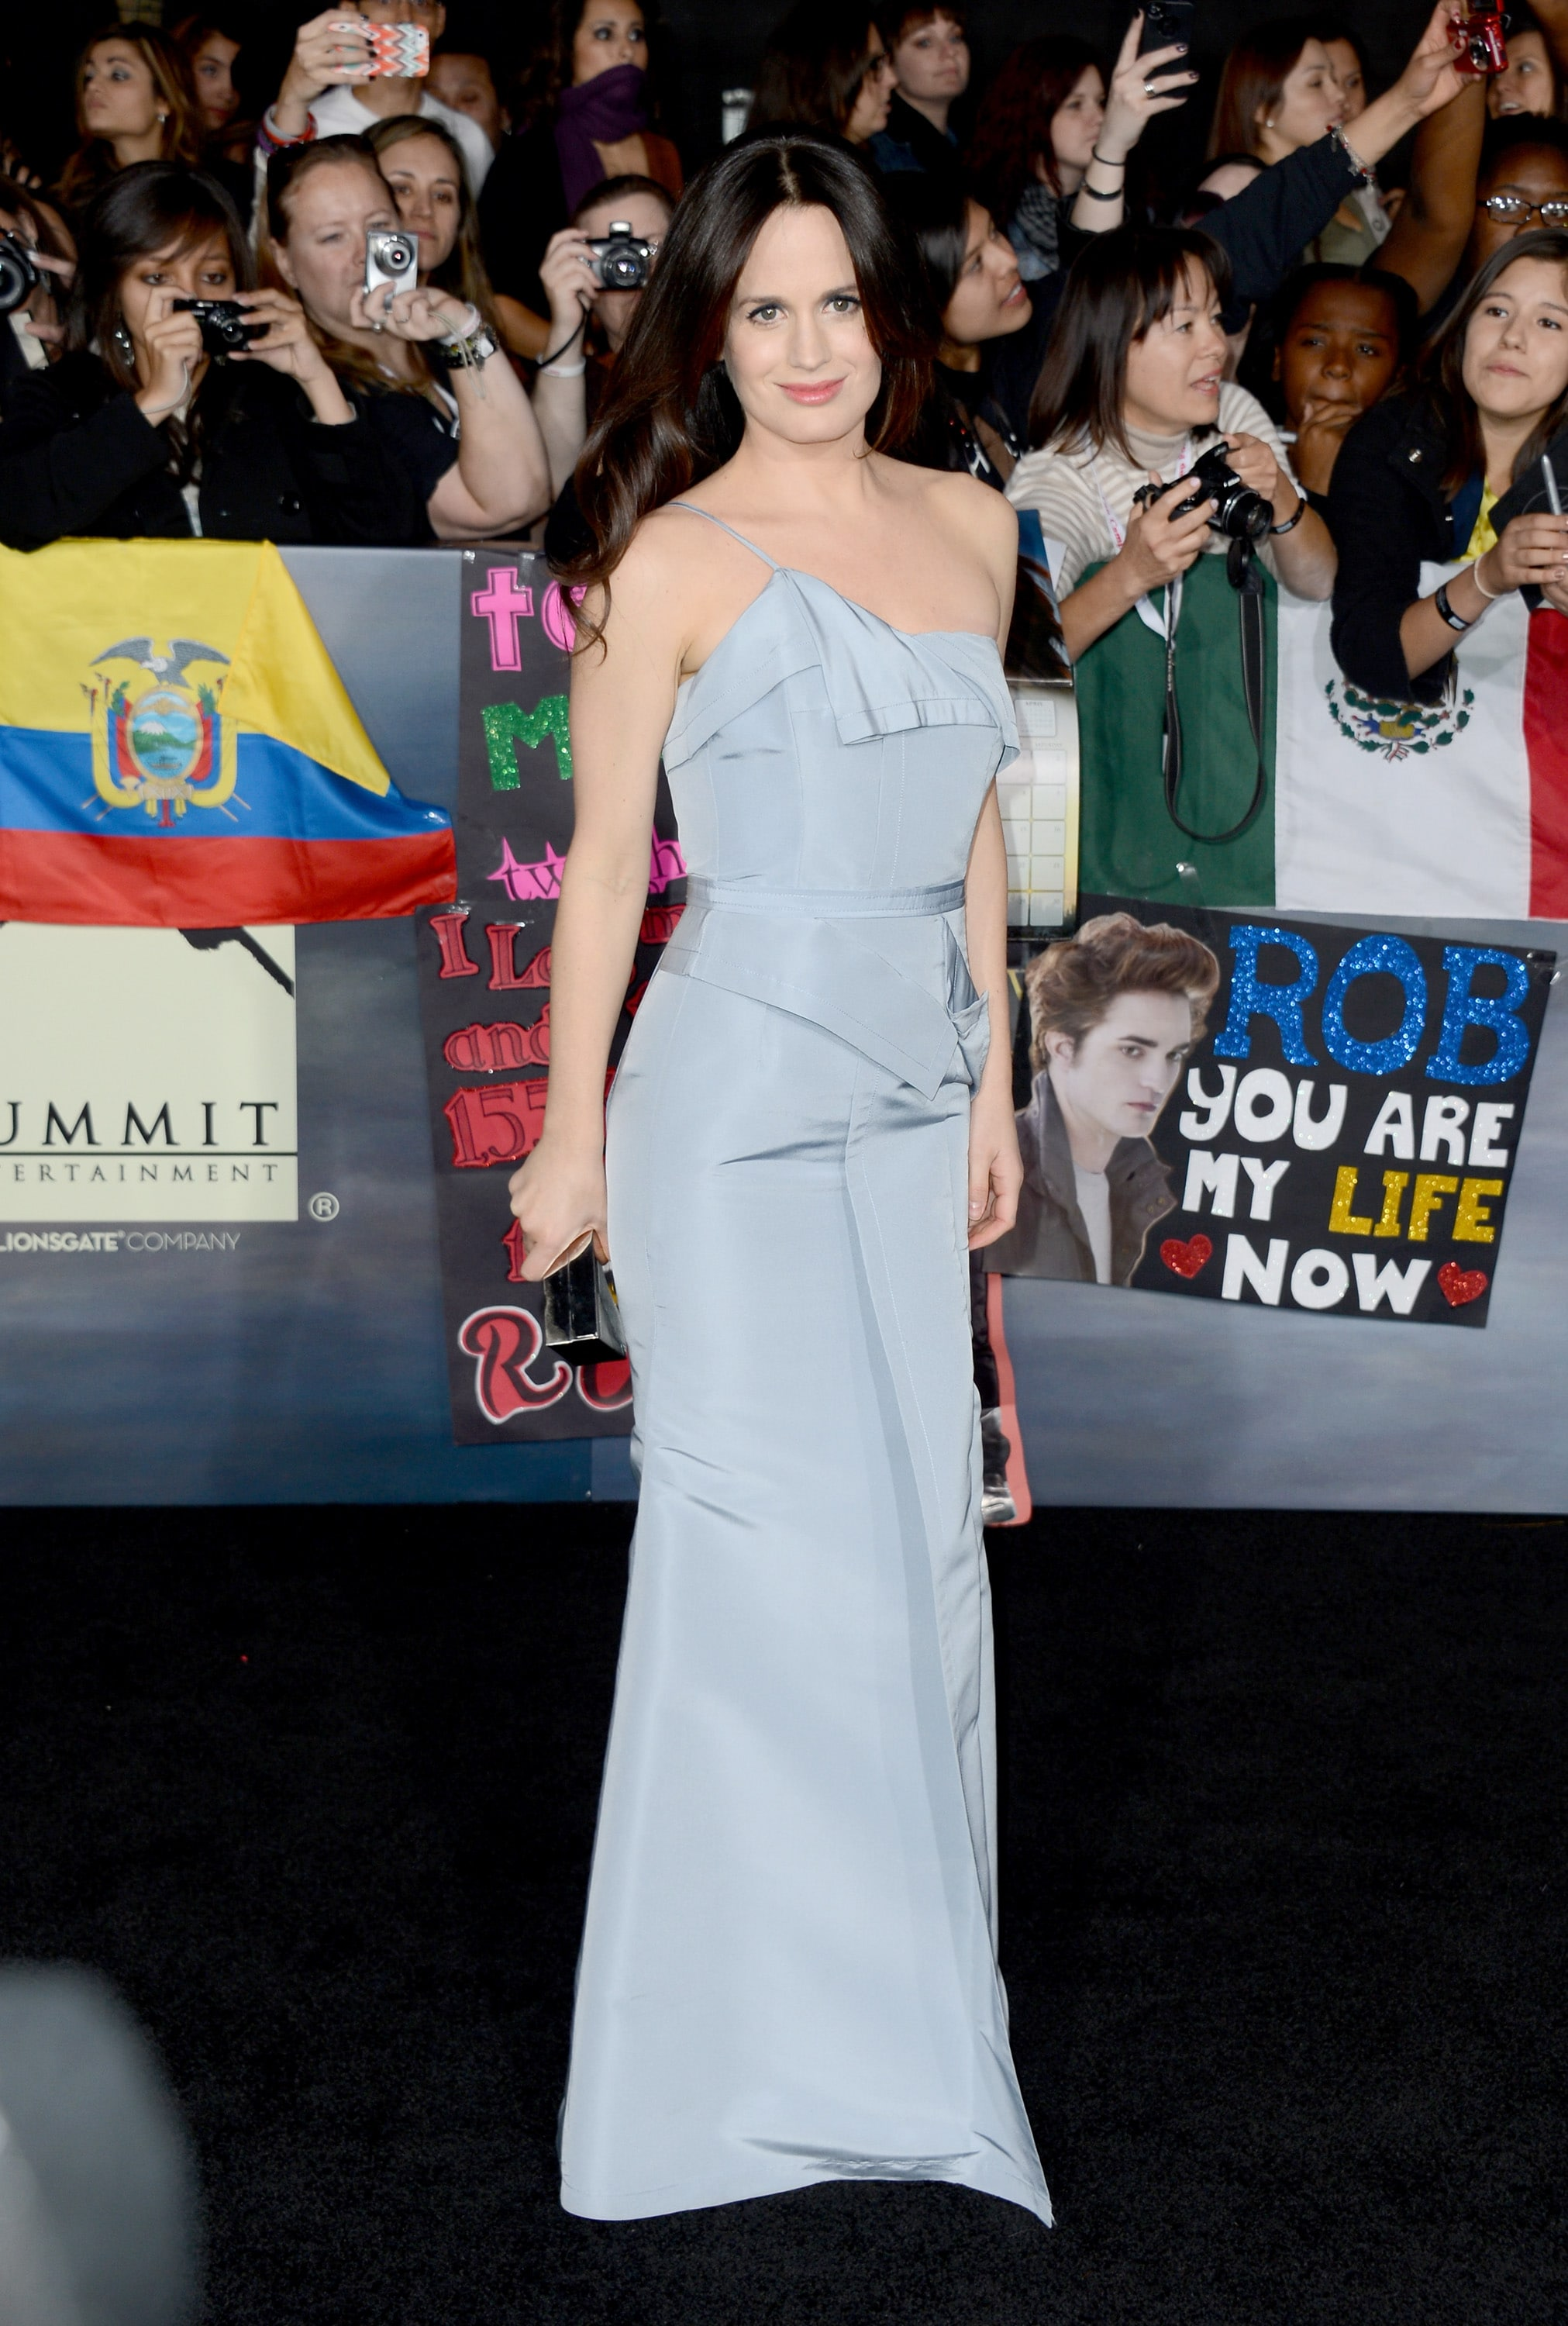 Marlane barnes breaking dawn premiere photos - 350 cc high profile silicone implants images